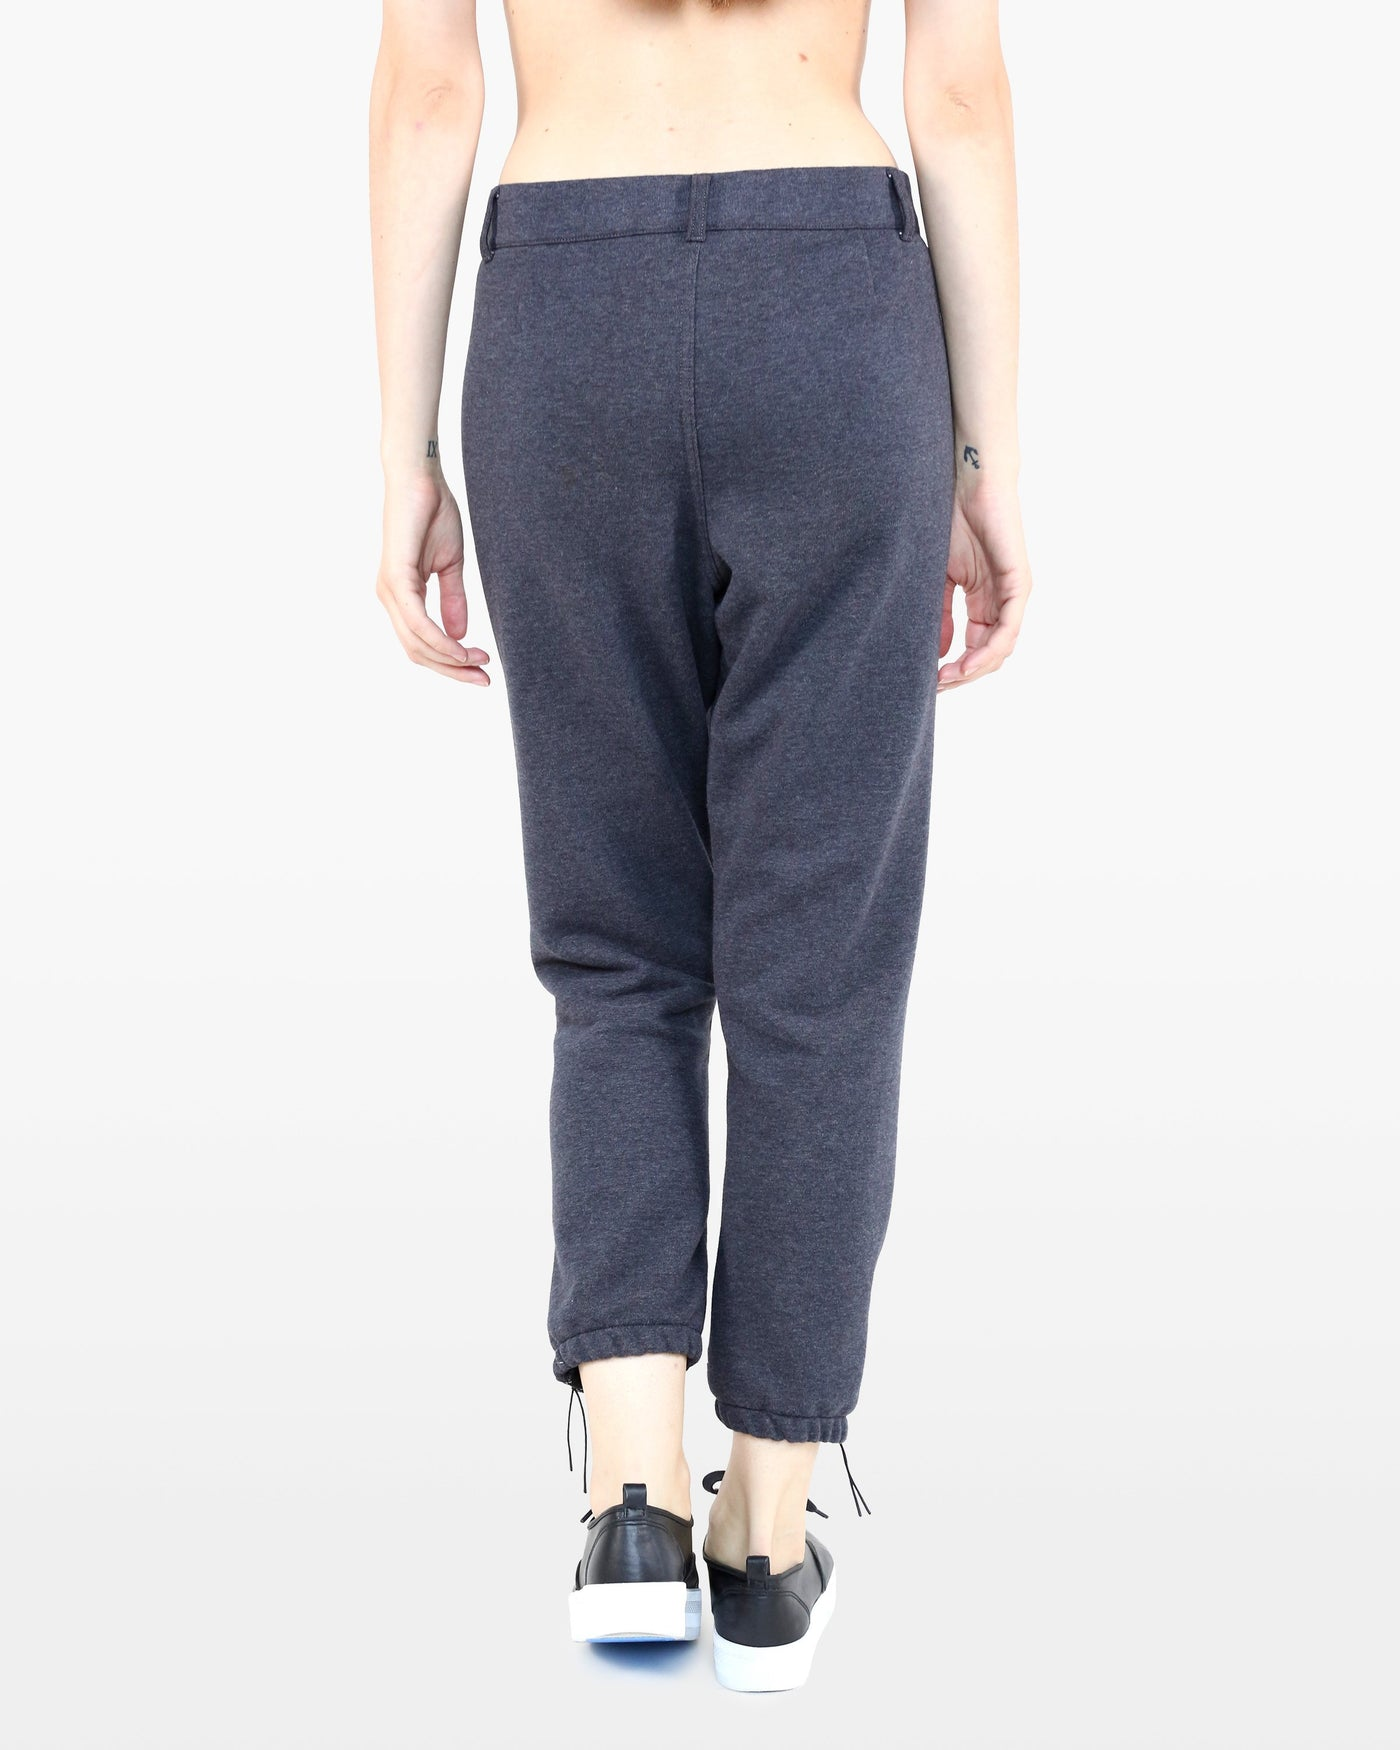 Lovelace Pant DFL in charcoal